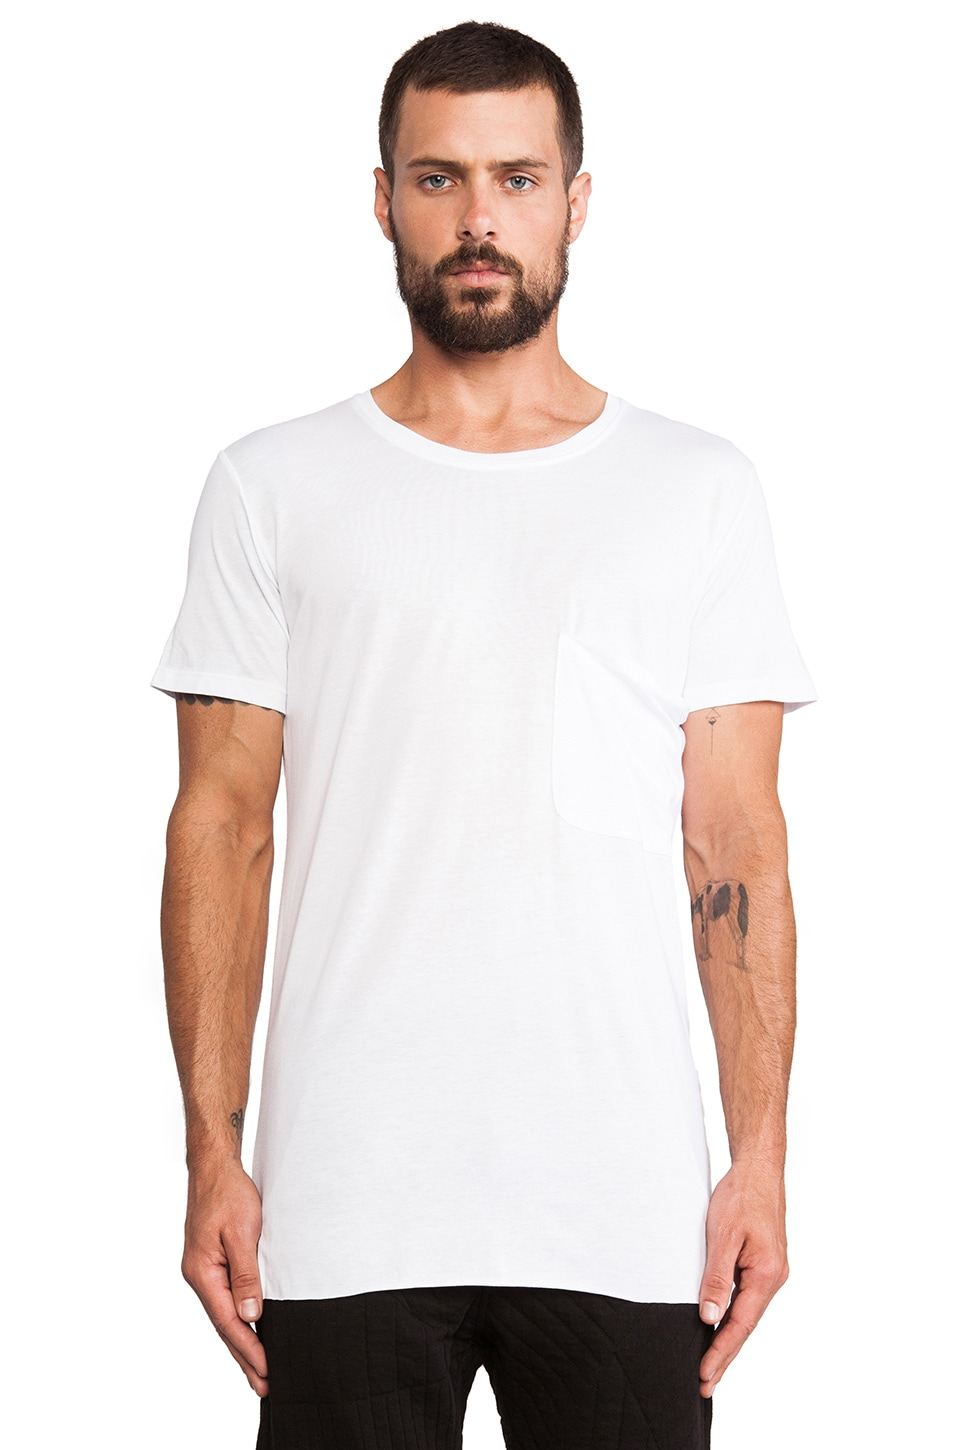 lot78 Modal Jersey Tee in White